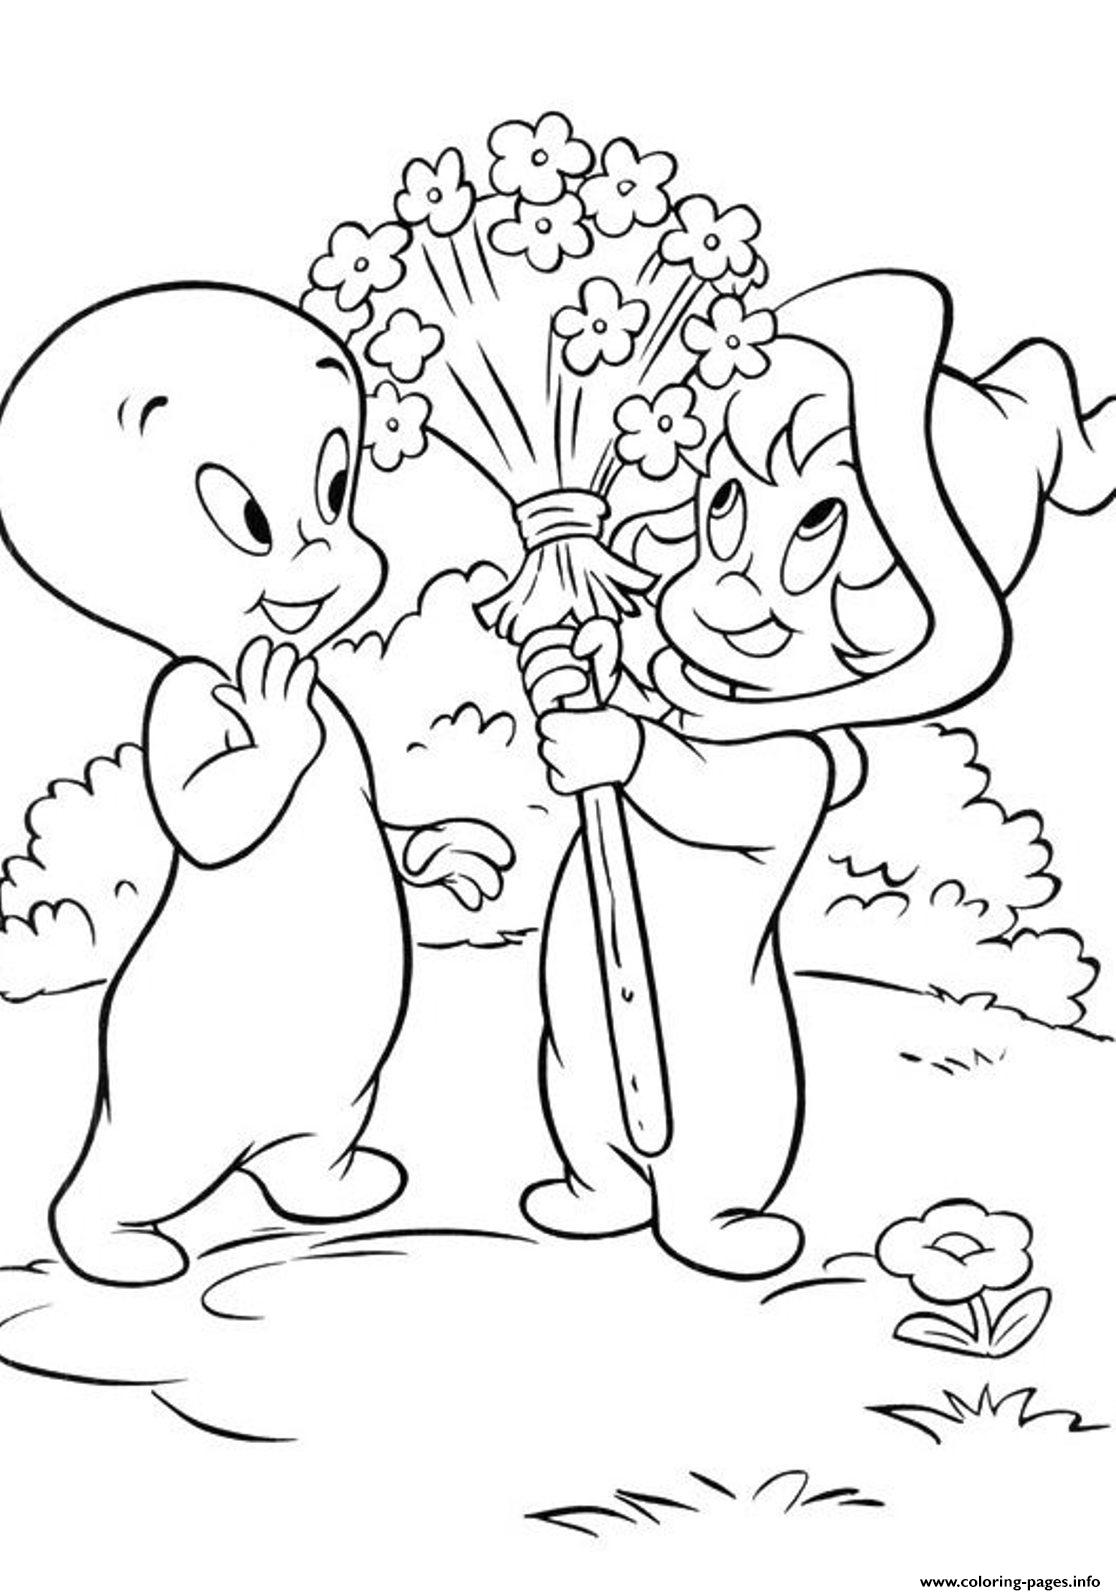 Casper Ghost S For Kids2a23 coloring pages